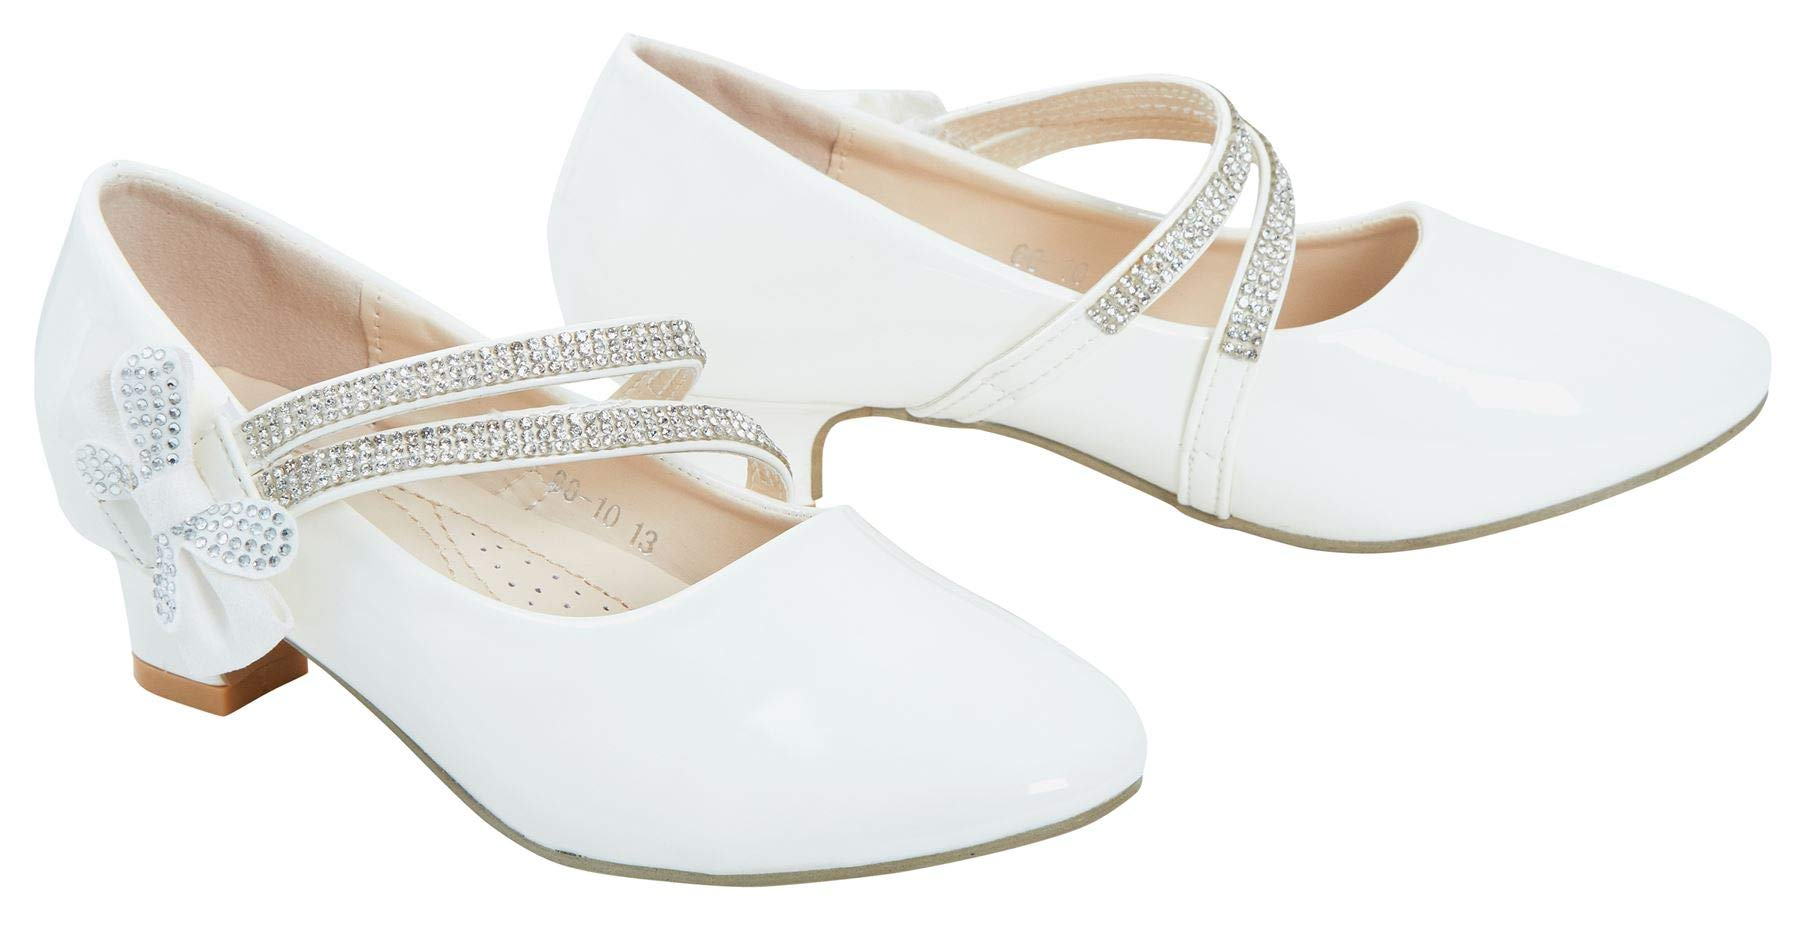 Kids Girls Diamante Patent Embellished Low Mid Heel Party Bridesmaid Shiny Shoes